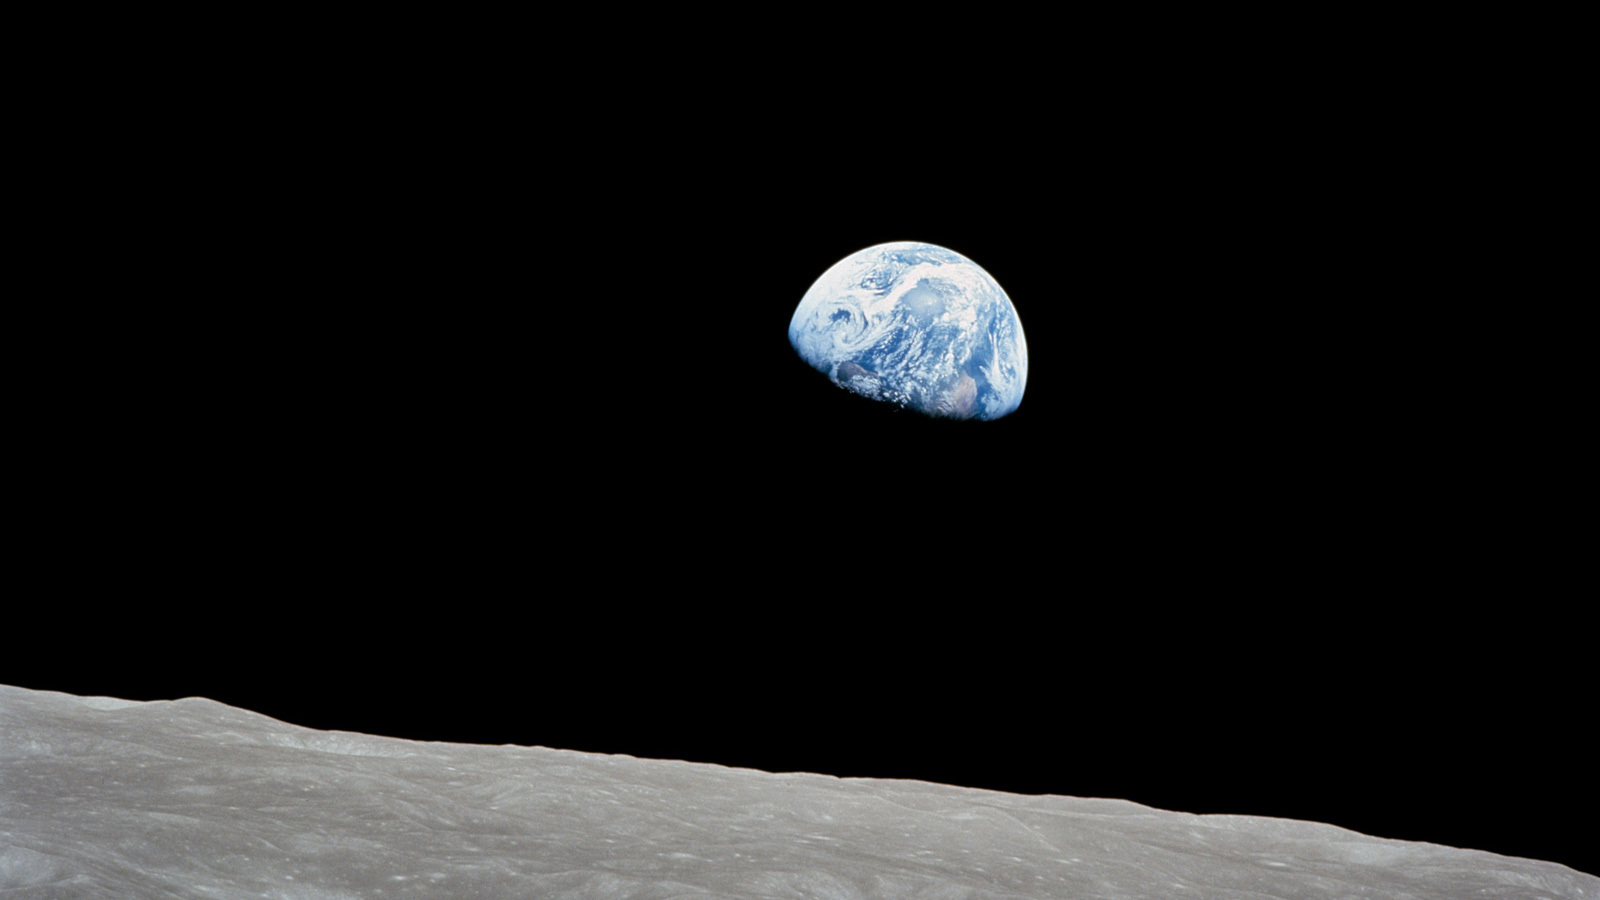 The Earth rises above the lunar horizon in this telephoto view taken from the Apollo 8 spacecraft